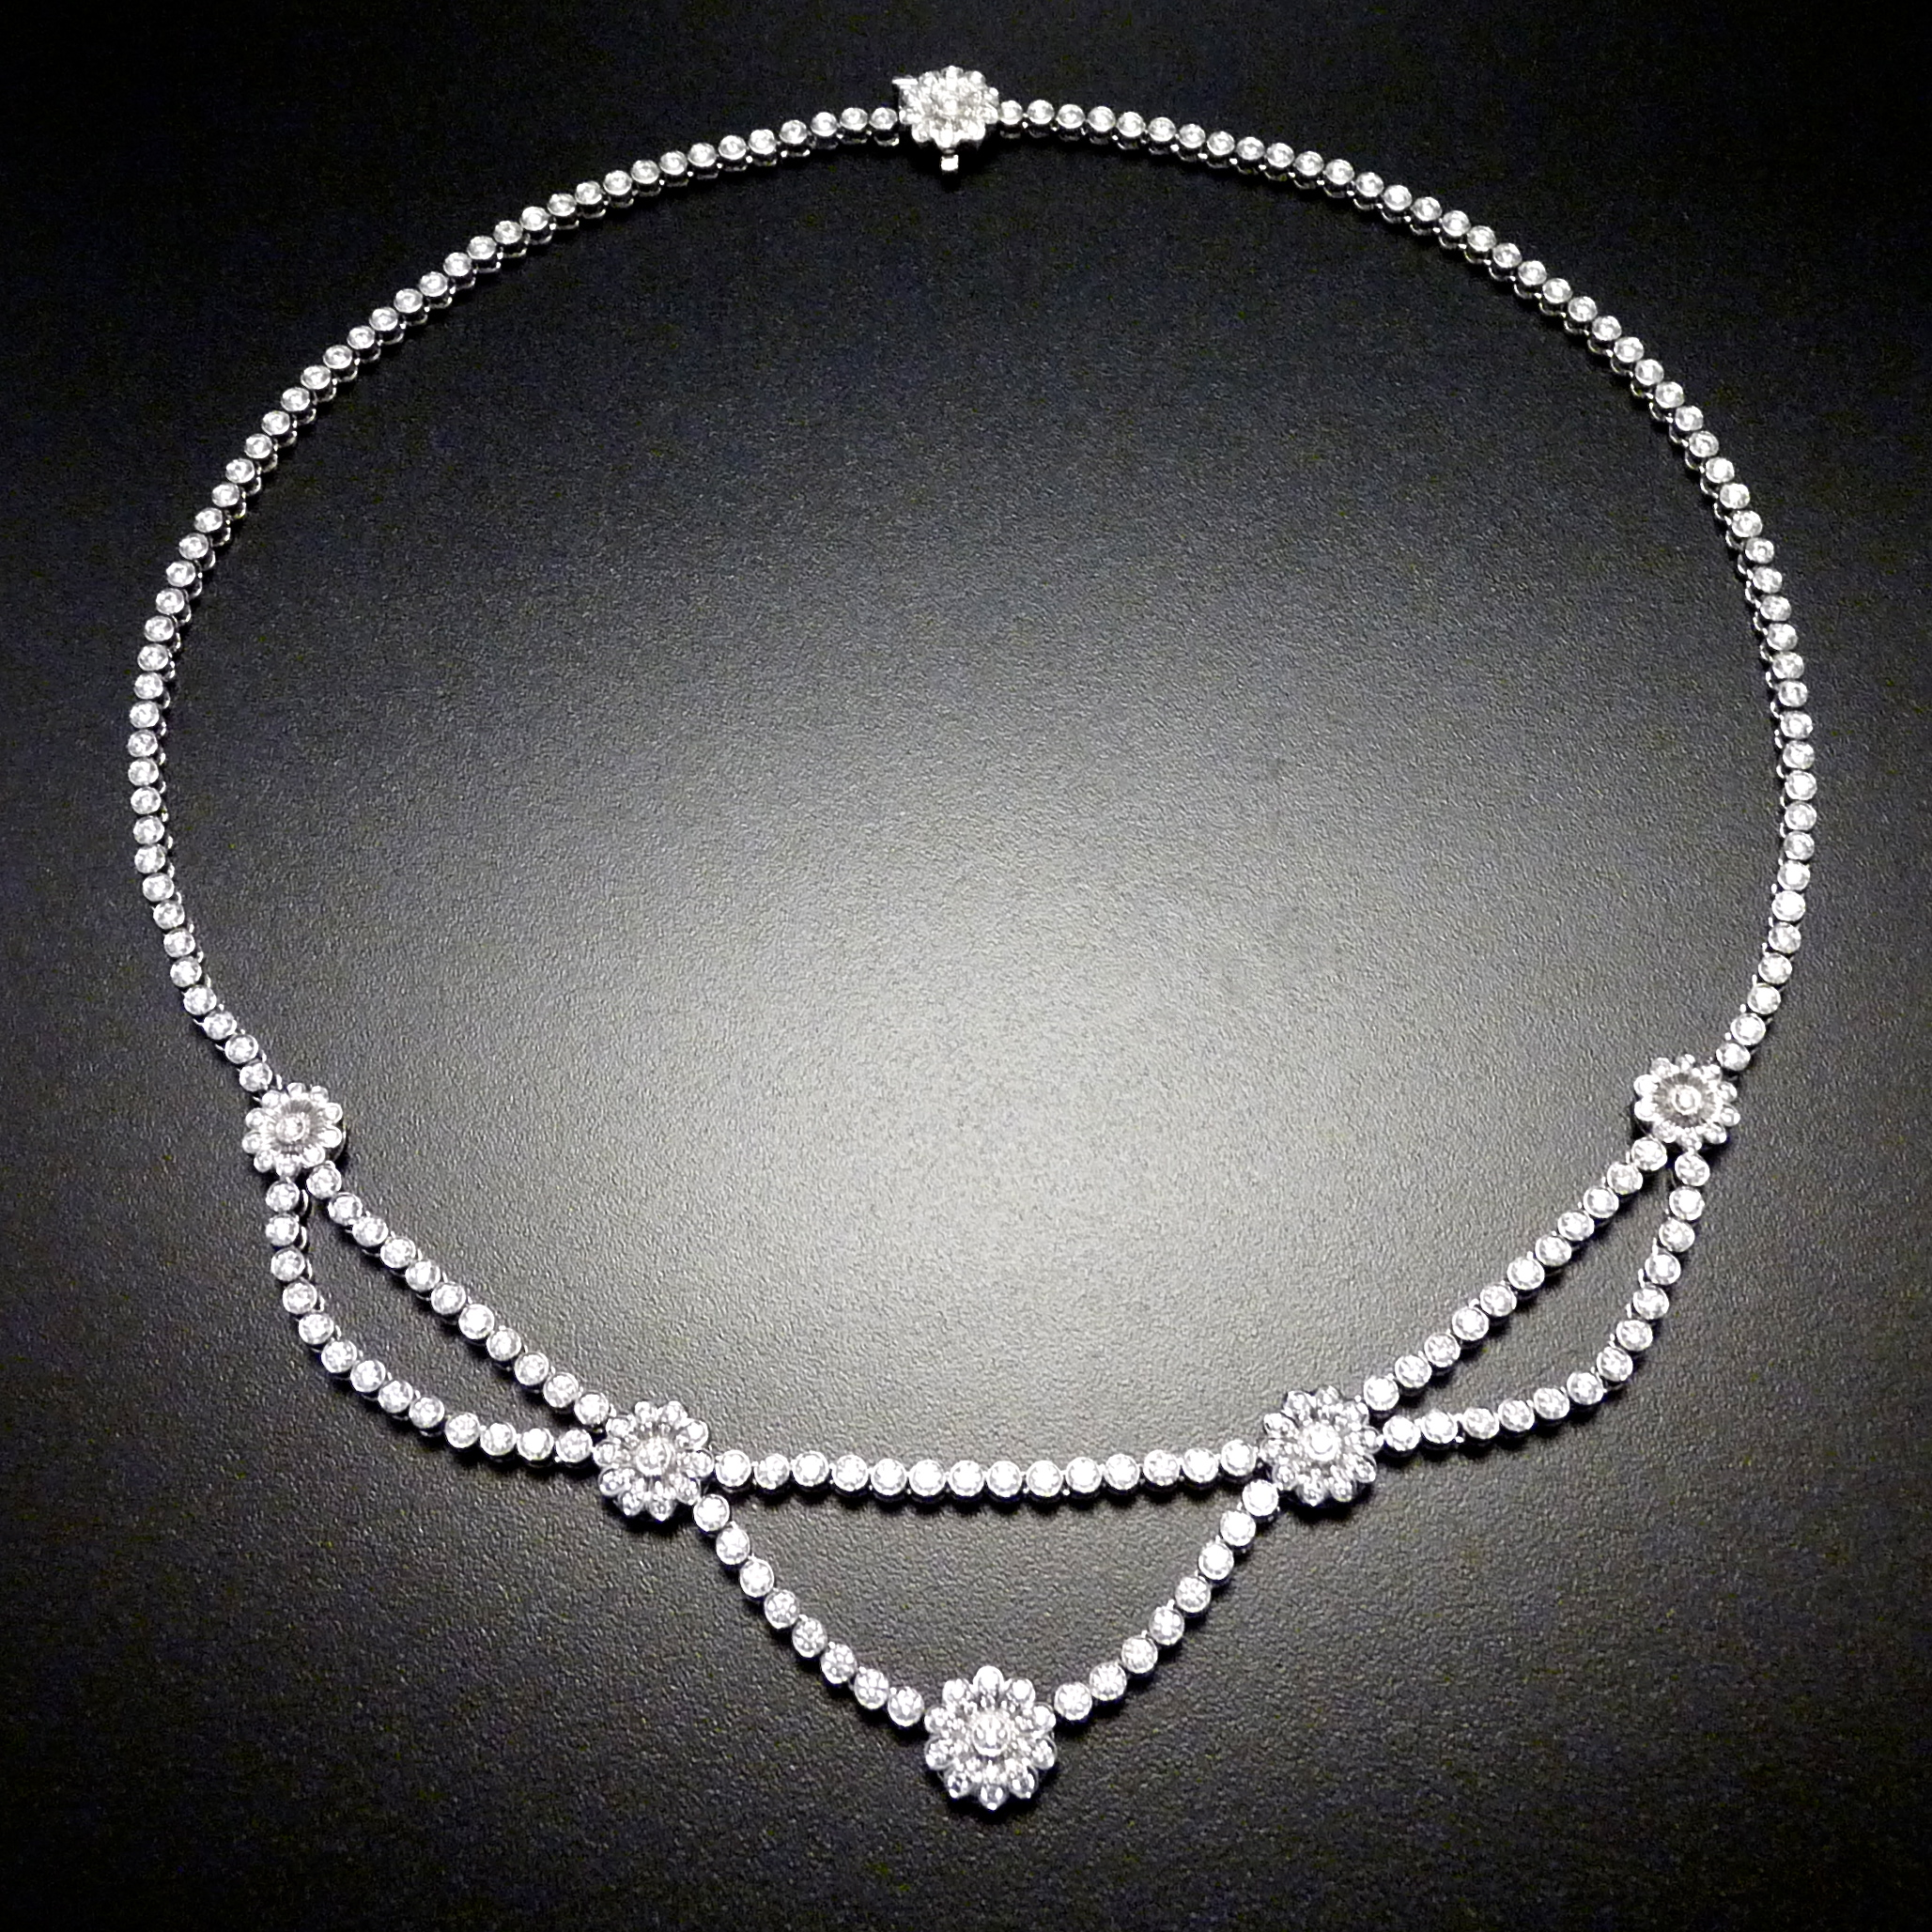 Diamond and Platinum Necklace and Earrings Tiffany & Co